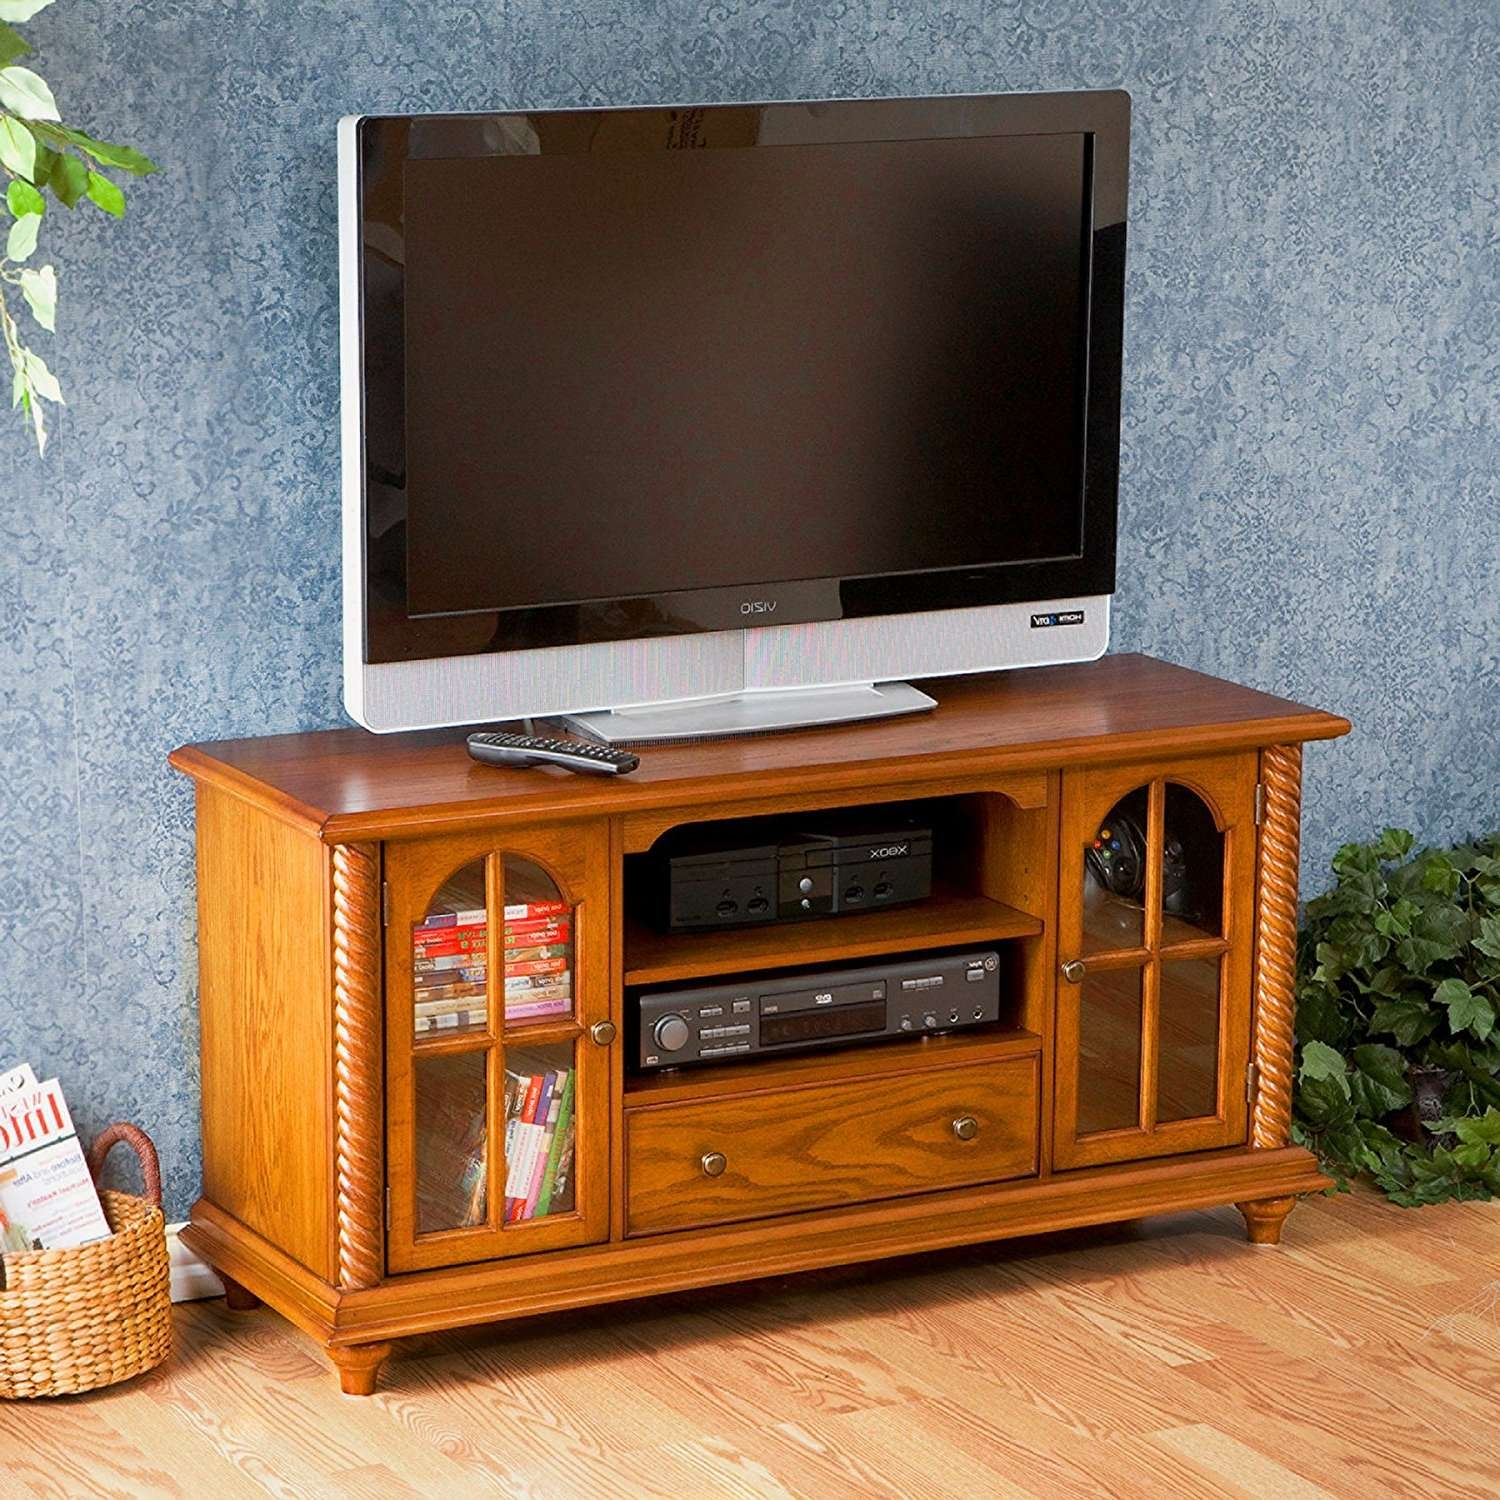 Innovative Designs Oak Tv Console | Marku Home Design With Oak Tv Stands For Flat Screens (View 8 of 15)